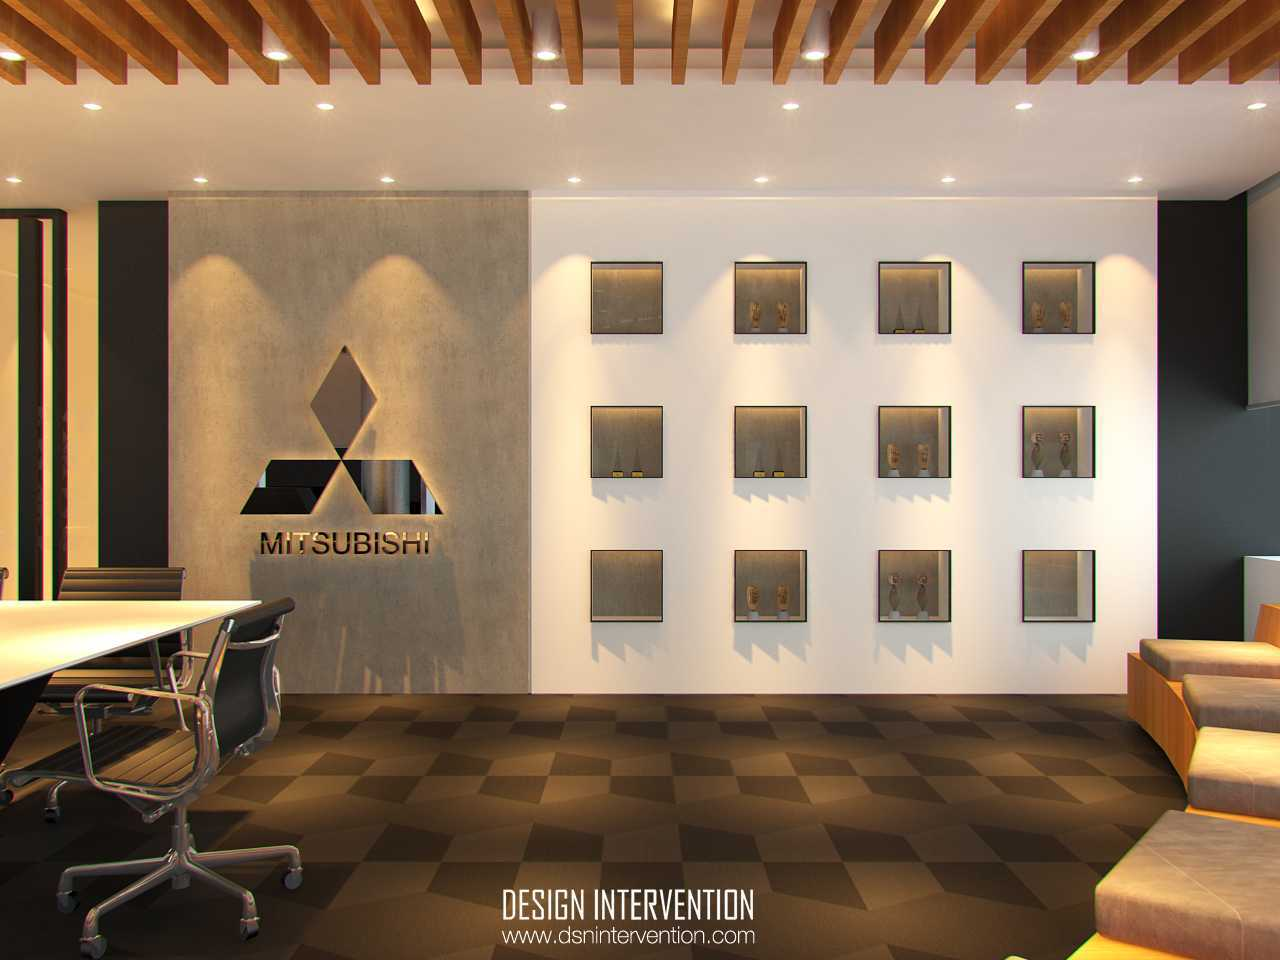 Design Intervention Mitsubishi Hq Office Tebet Tebet Meeting-Room-View   14983